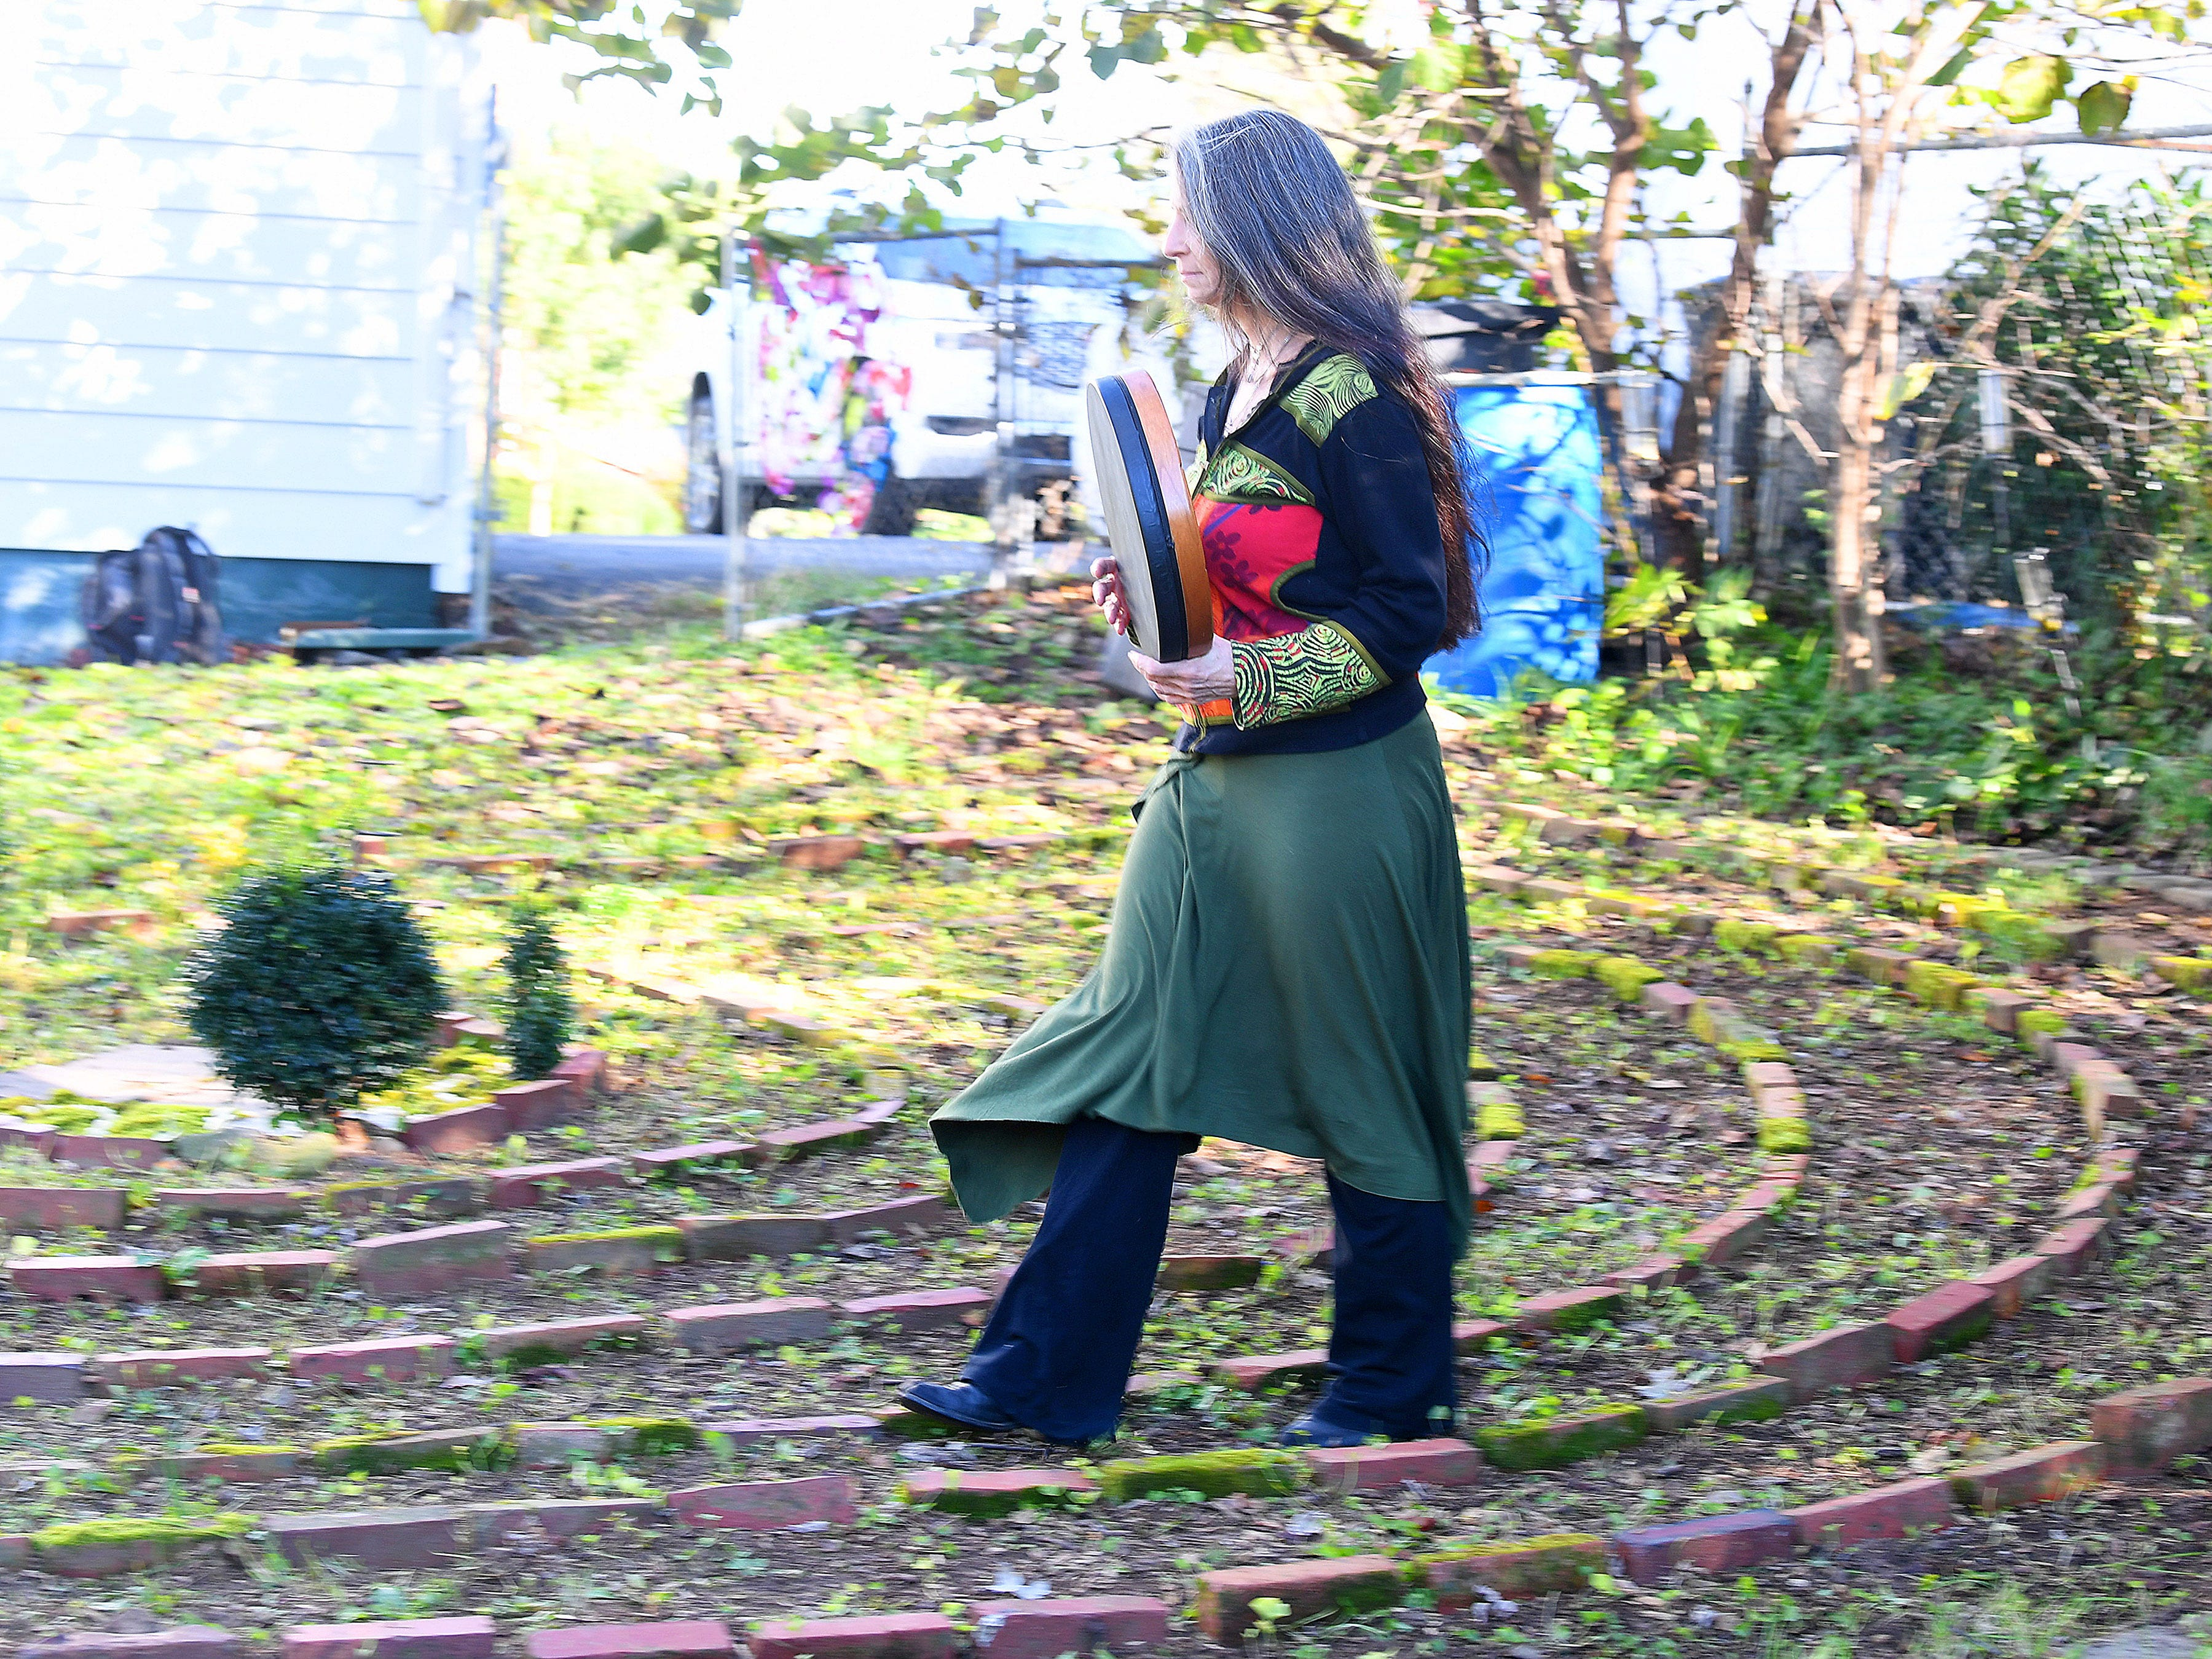 "Willow Kelly, a witch and Sufi, walks the pattern of a labyrinth outside her Staunton residence with measured strides in time with her drum on October 19, 2018. ""The labyrinth is a great mystery to me that I continue to explore with wonder,"" she says. ""I walk it daily with few exceptions."""